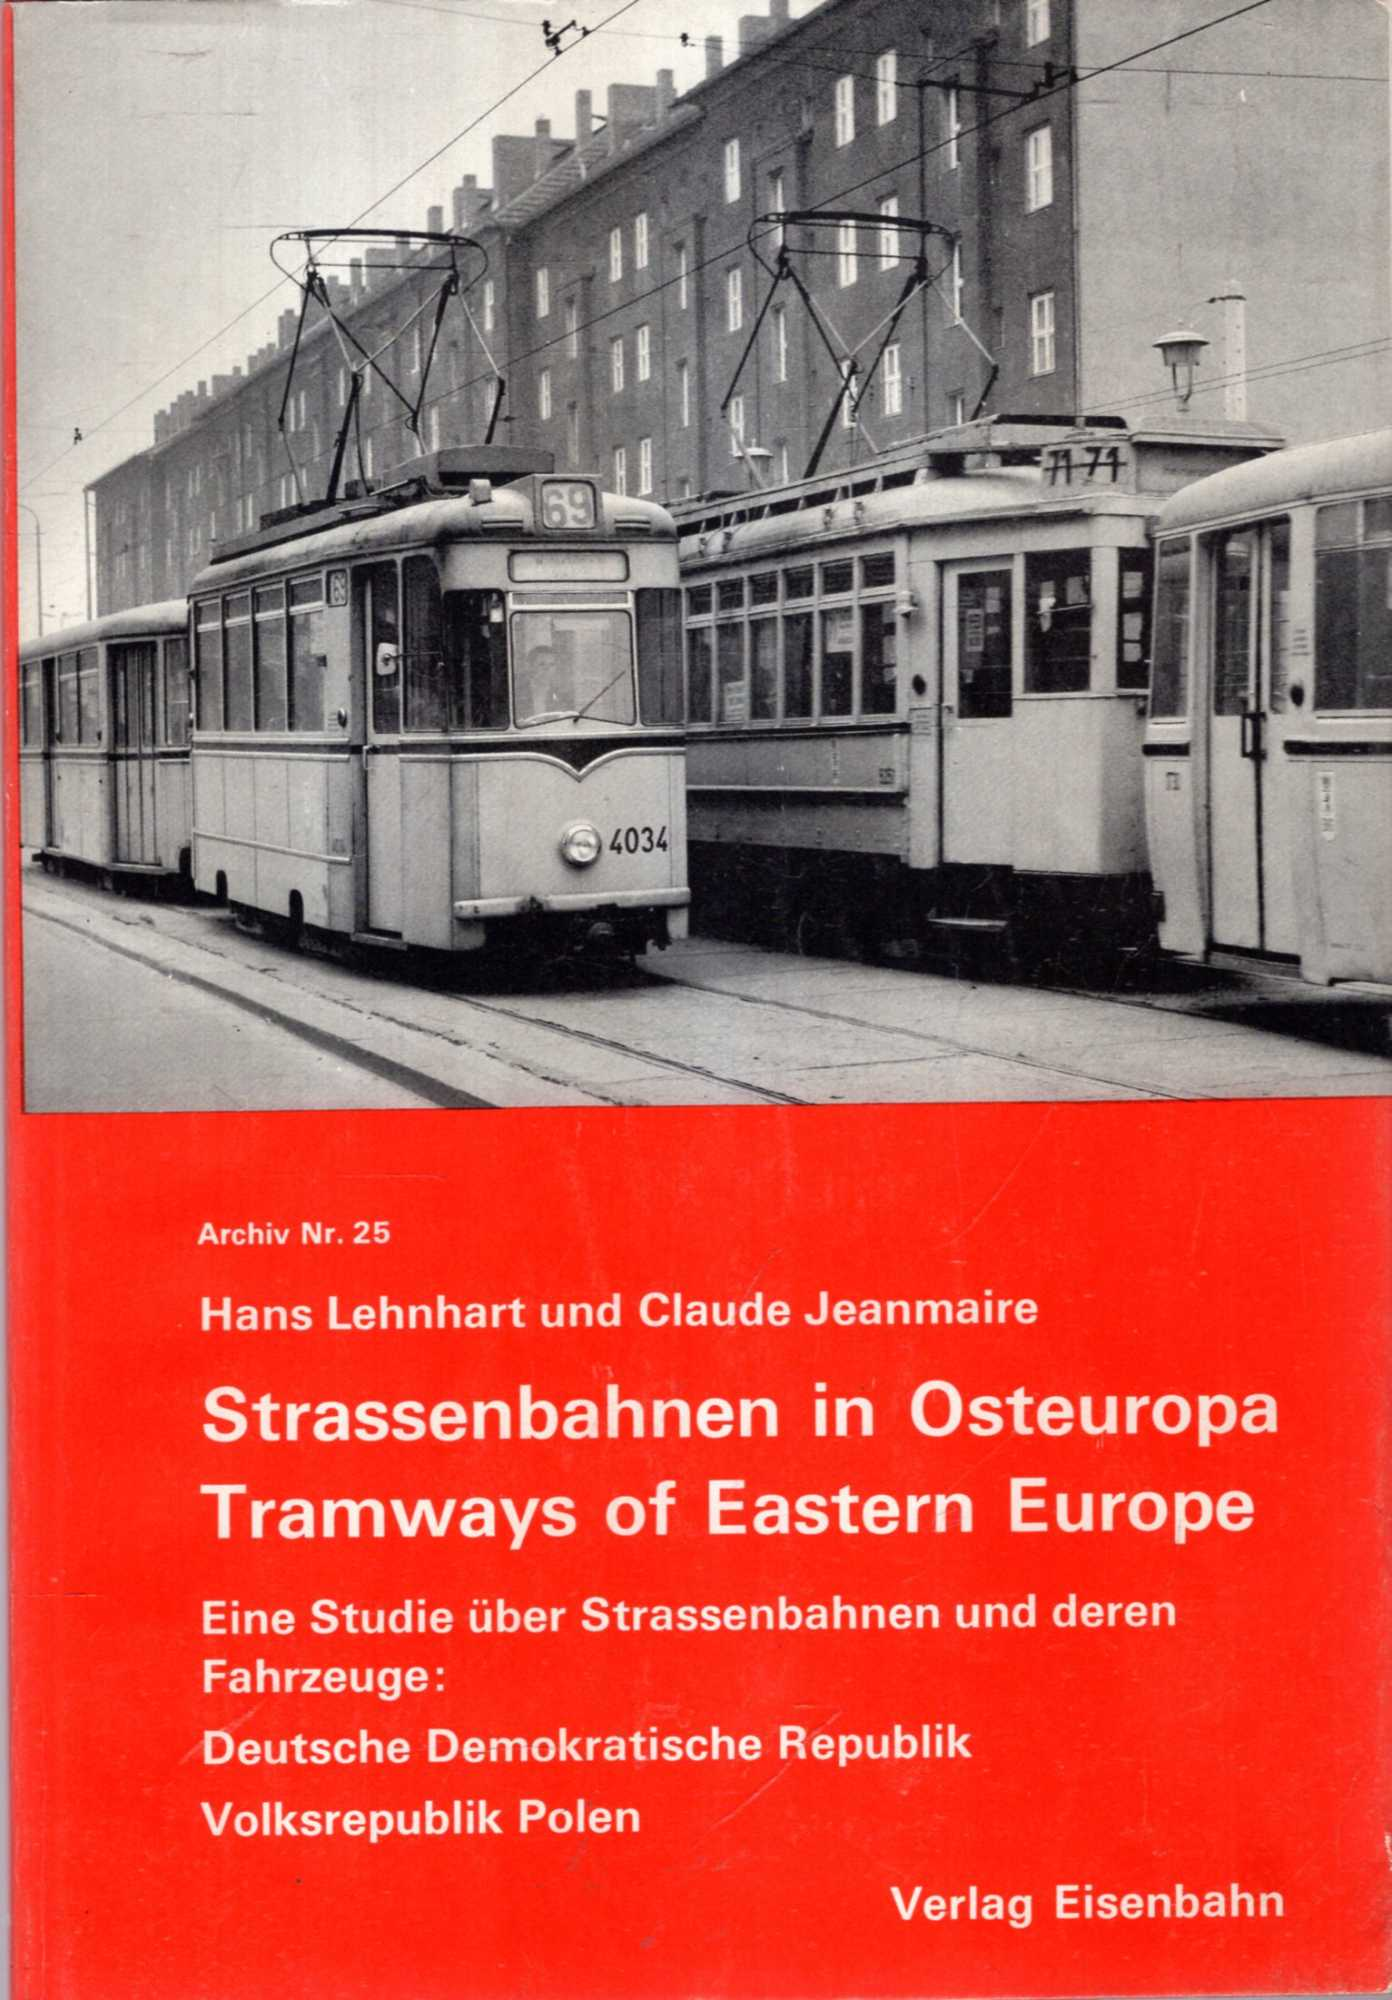 Image for Strassenbahnen in Osteuropa: Eine Studie u?ber Strassenbahnen und deren Fahrzeuge = Tramways of Eastern Europe : study on tramways and rolling stock (Archiv ; Nr. 25, 32) (German Edition)